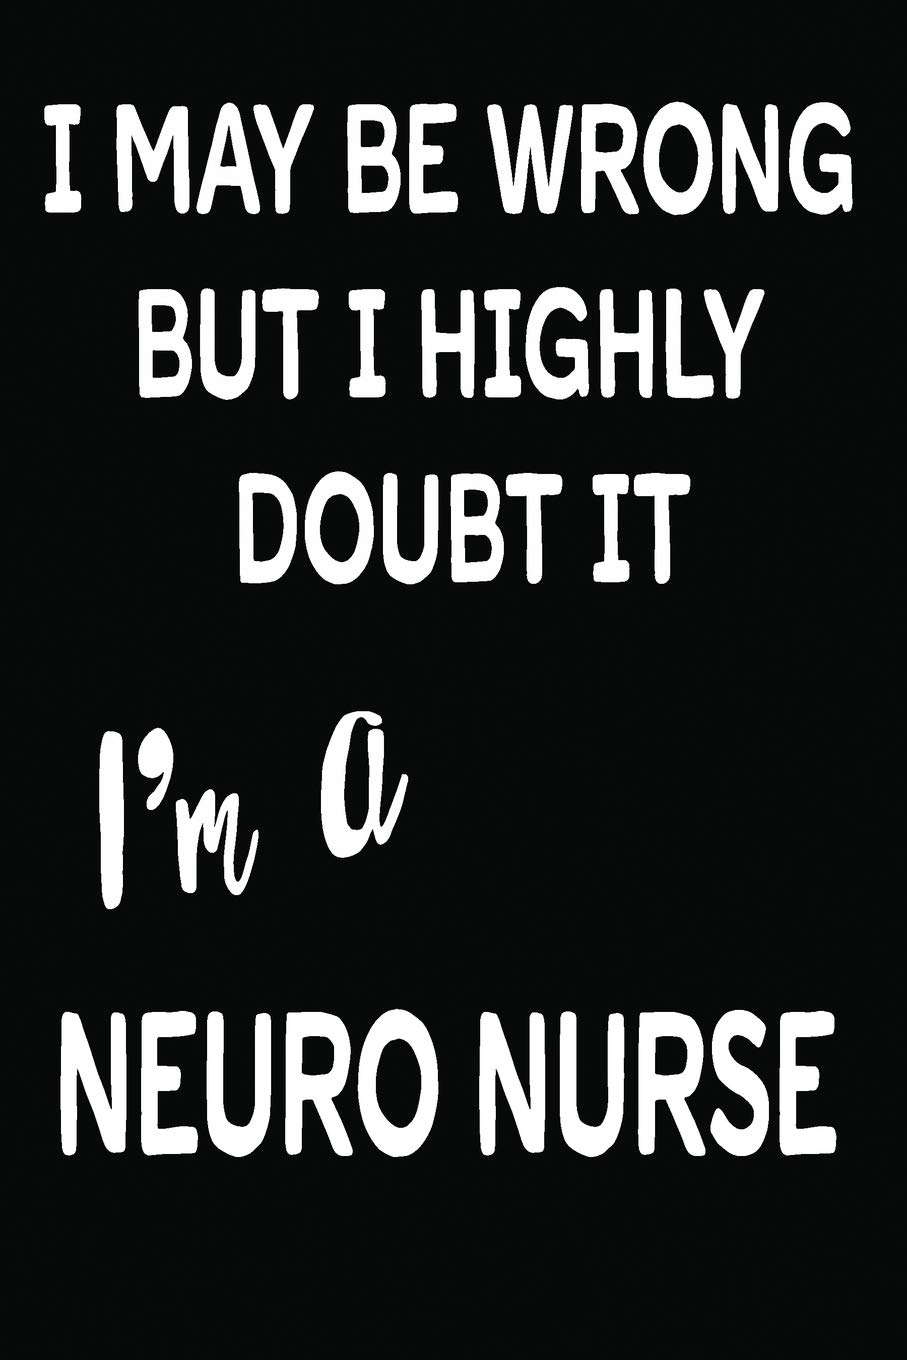 I May Be Wrong But I Highly Doubt It I'm A Neuro Nurse: 6 X